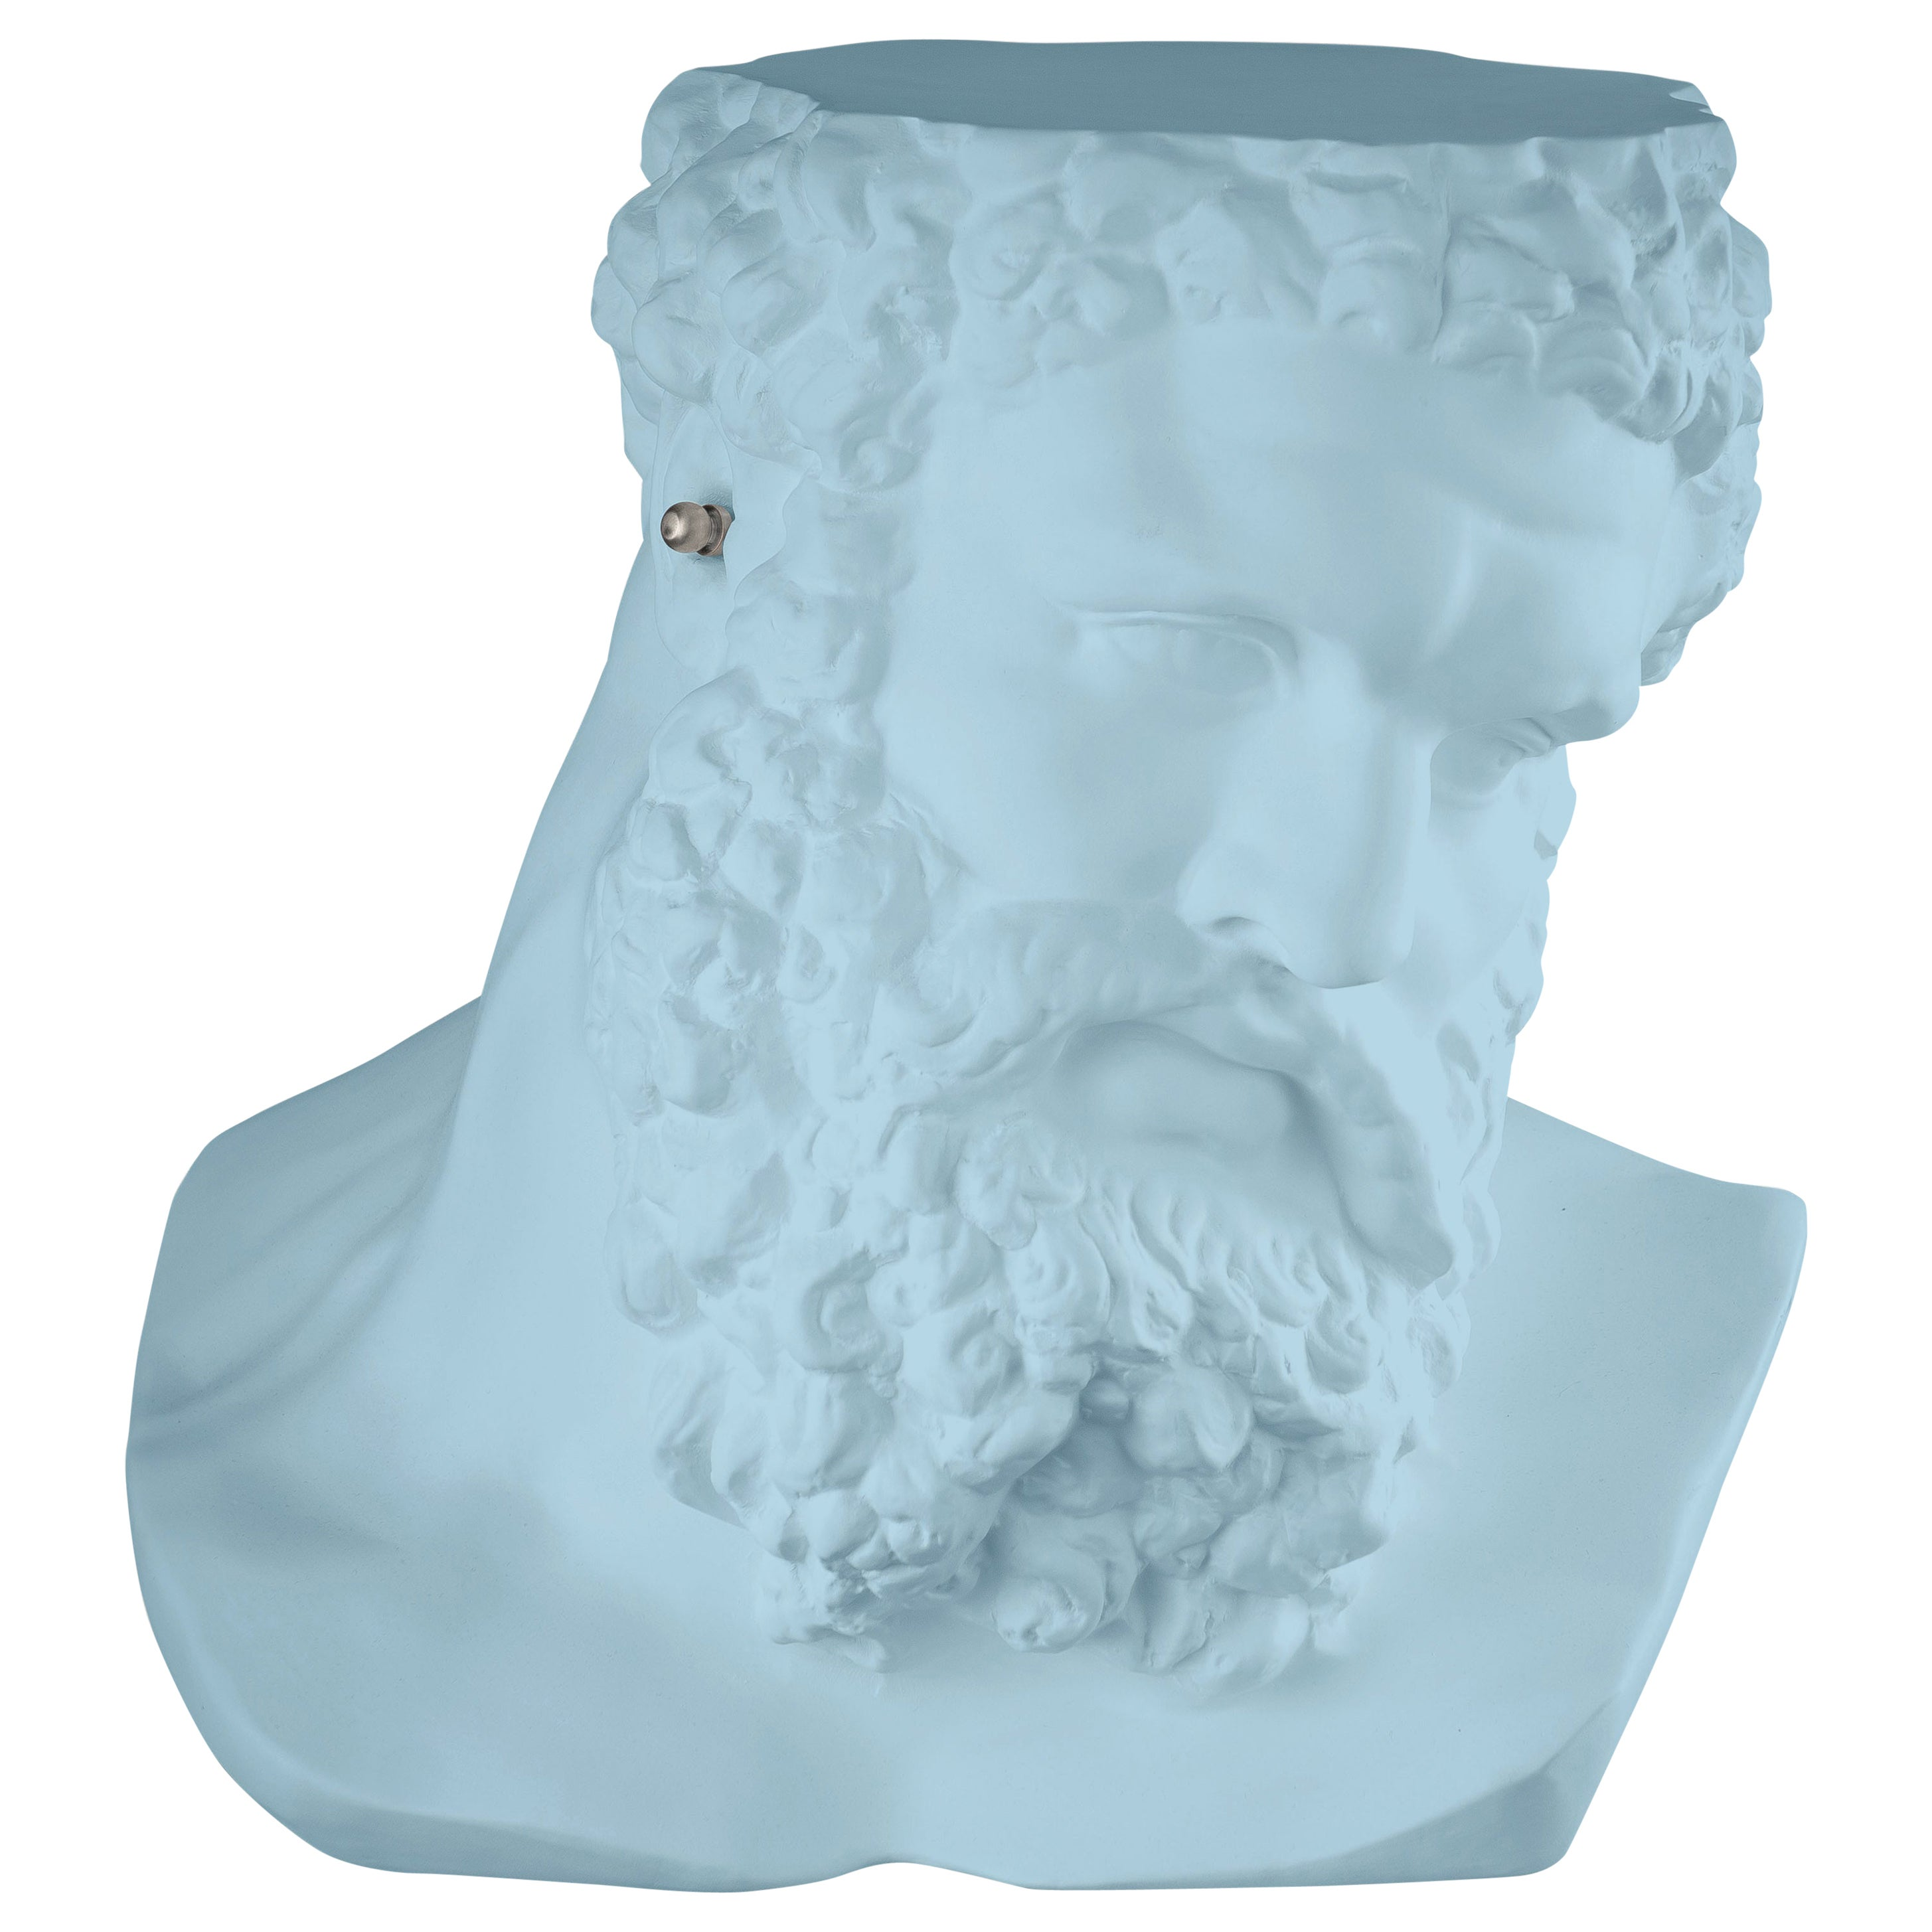 """Bust Ercole""""Don't Hear"""", Small Table/Sculpture, Ceramic, Purist Blue Color Italy"""